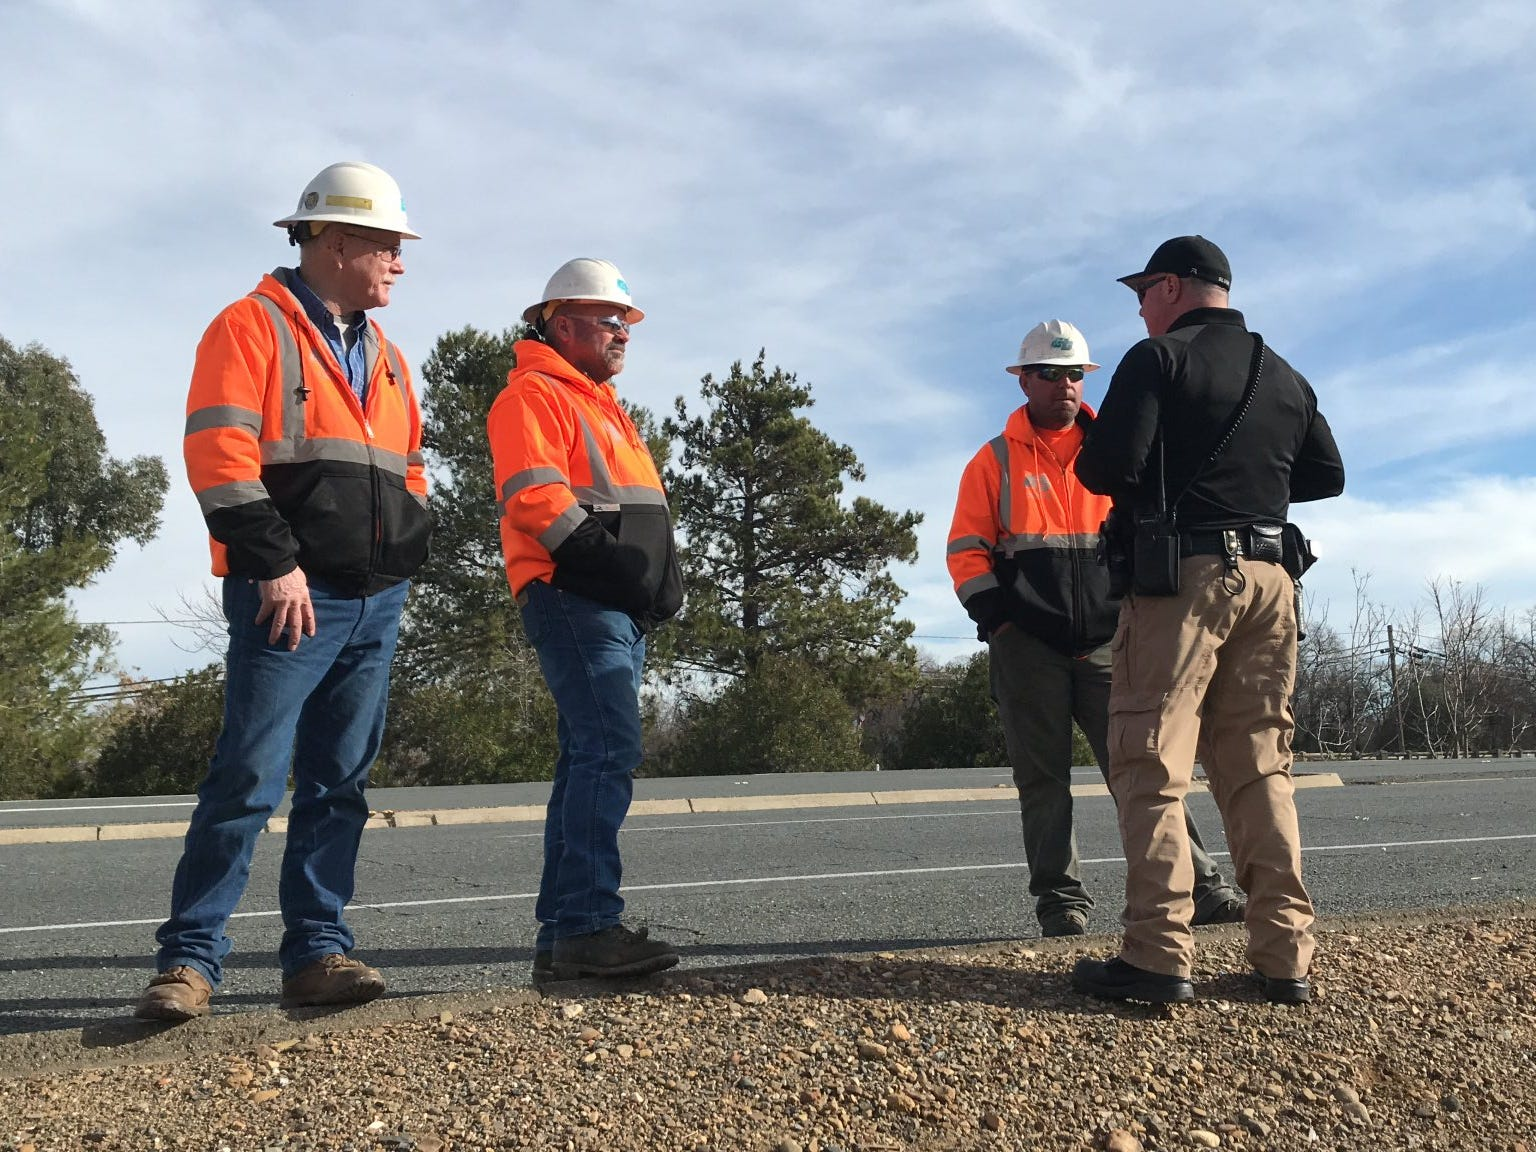 Road workers talk to an Anderson police officer after a shooting on Saturday, Dec. 29, 2018.